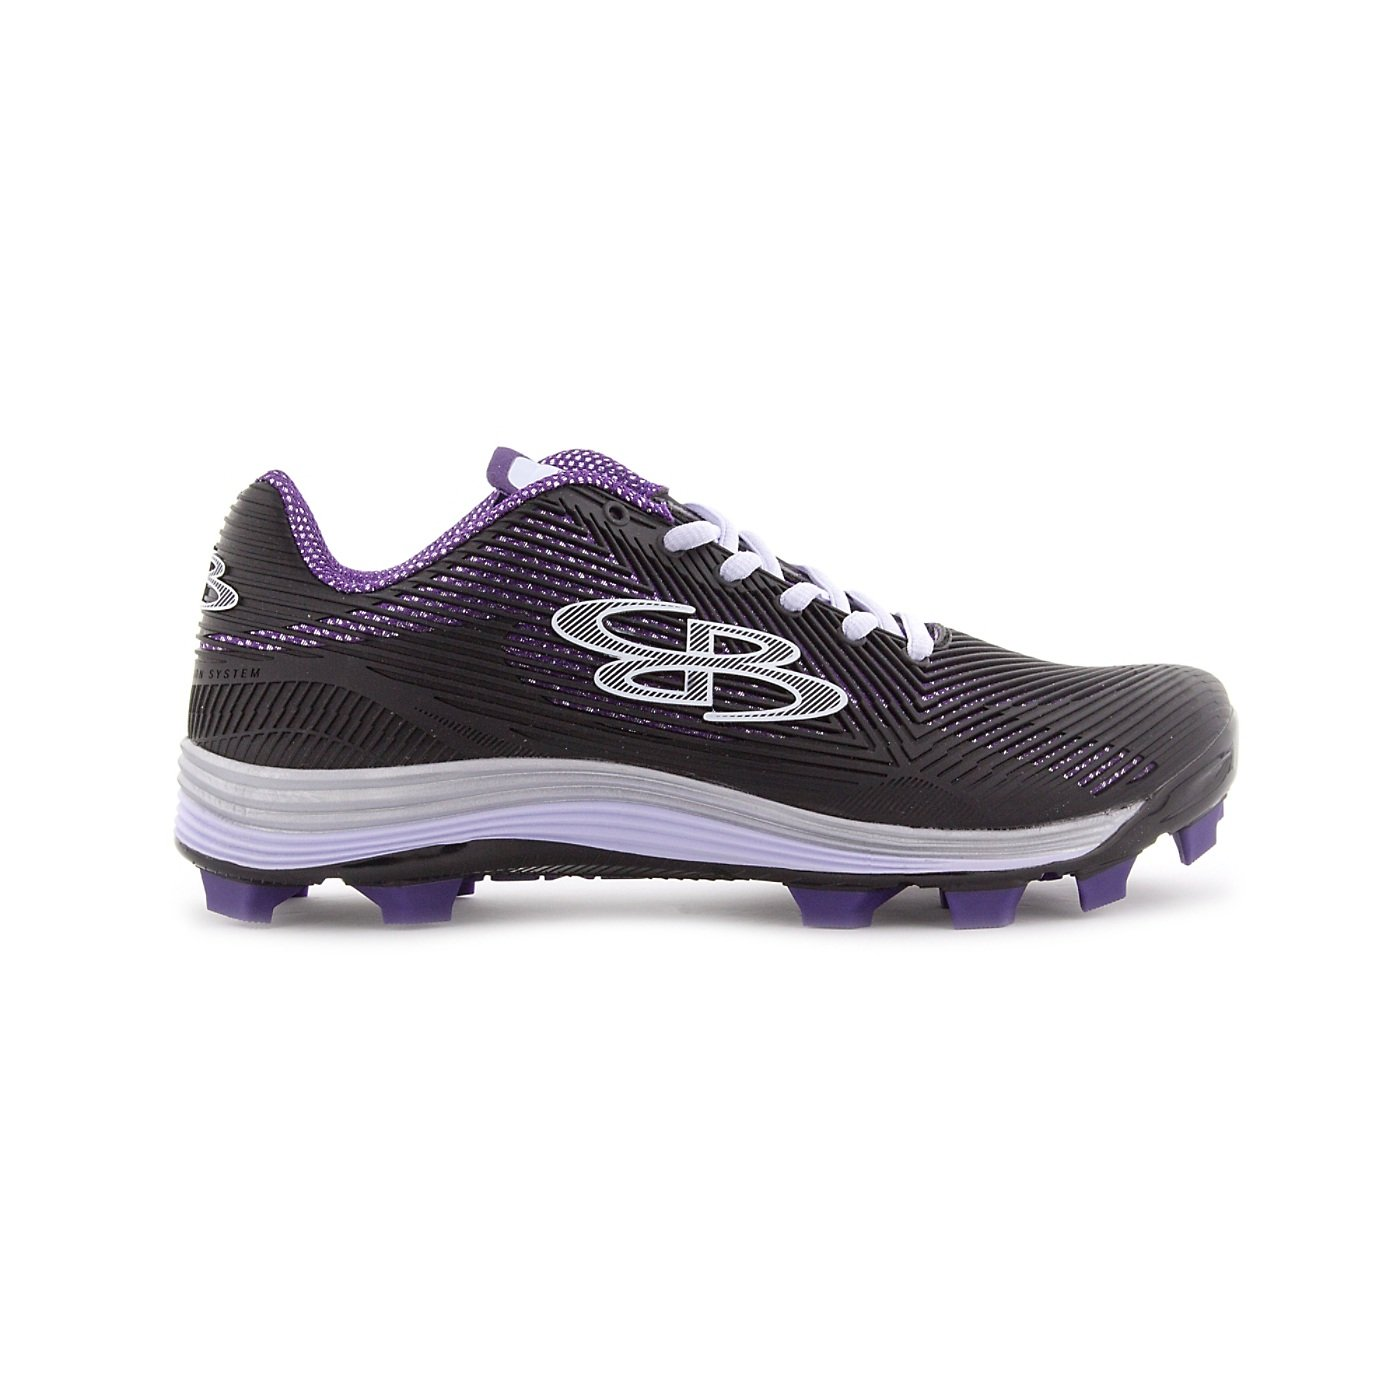 Boombah Women's Spotlight Molded Cleat Black/Purple - Size 6 by Boombah